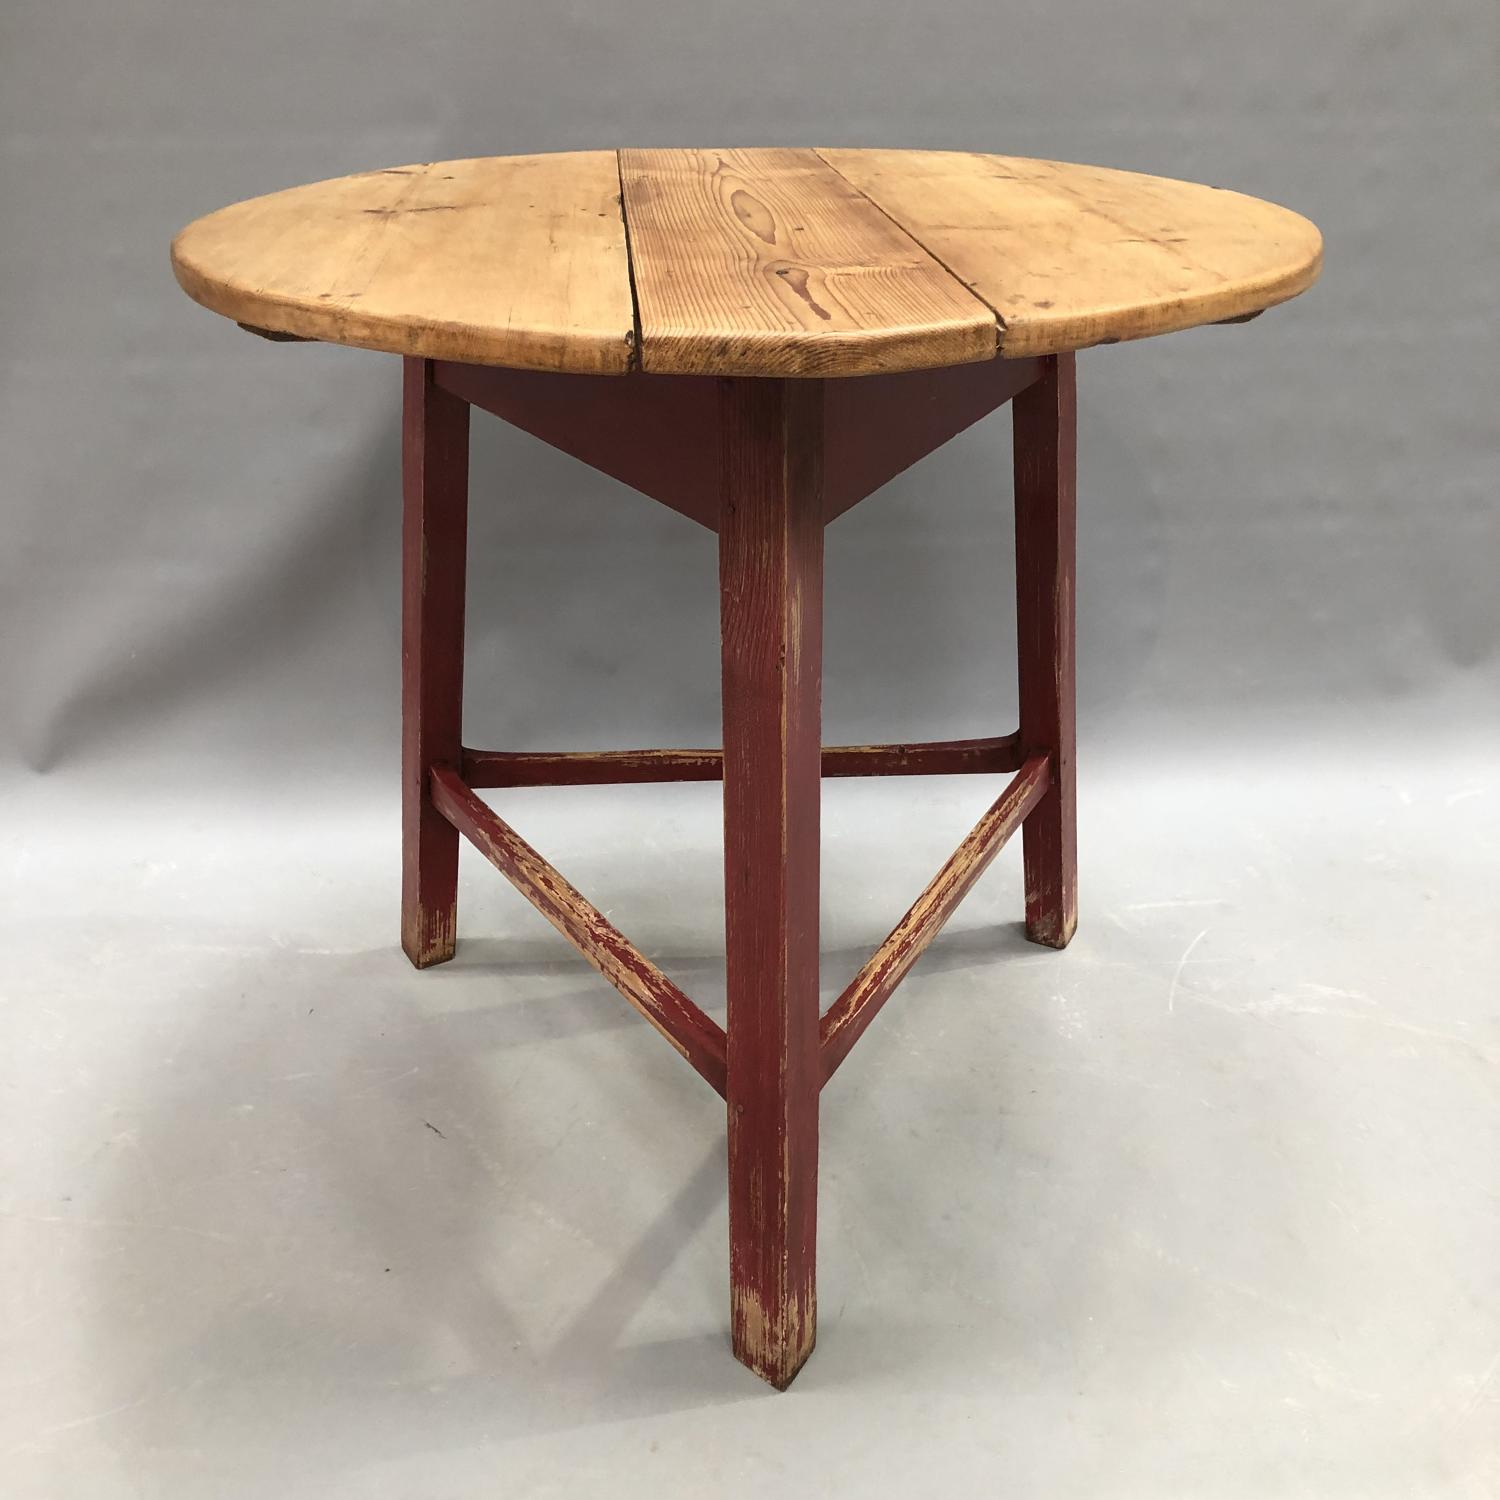 A painted pine cricket table